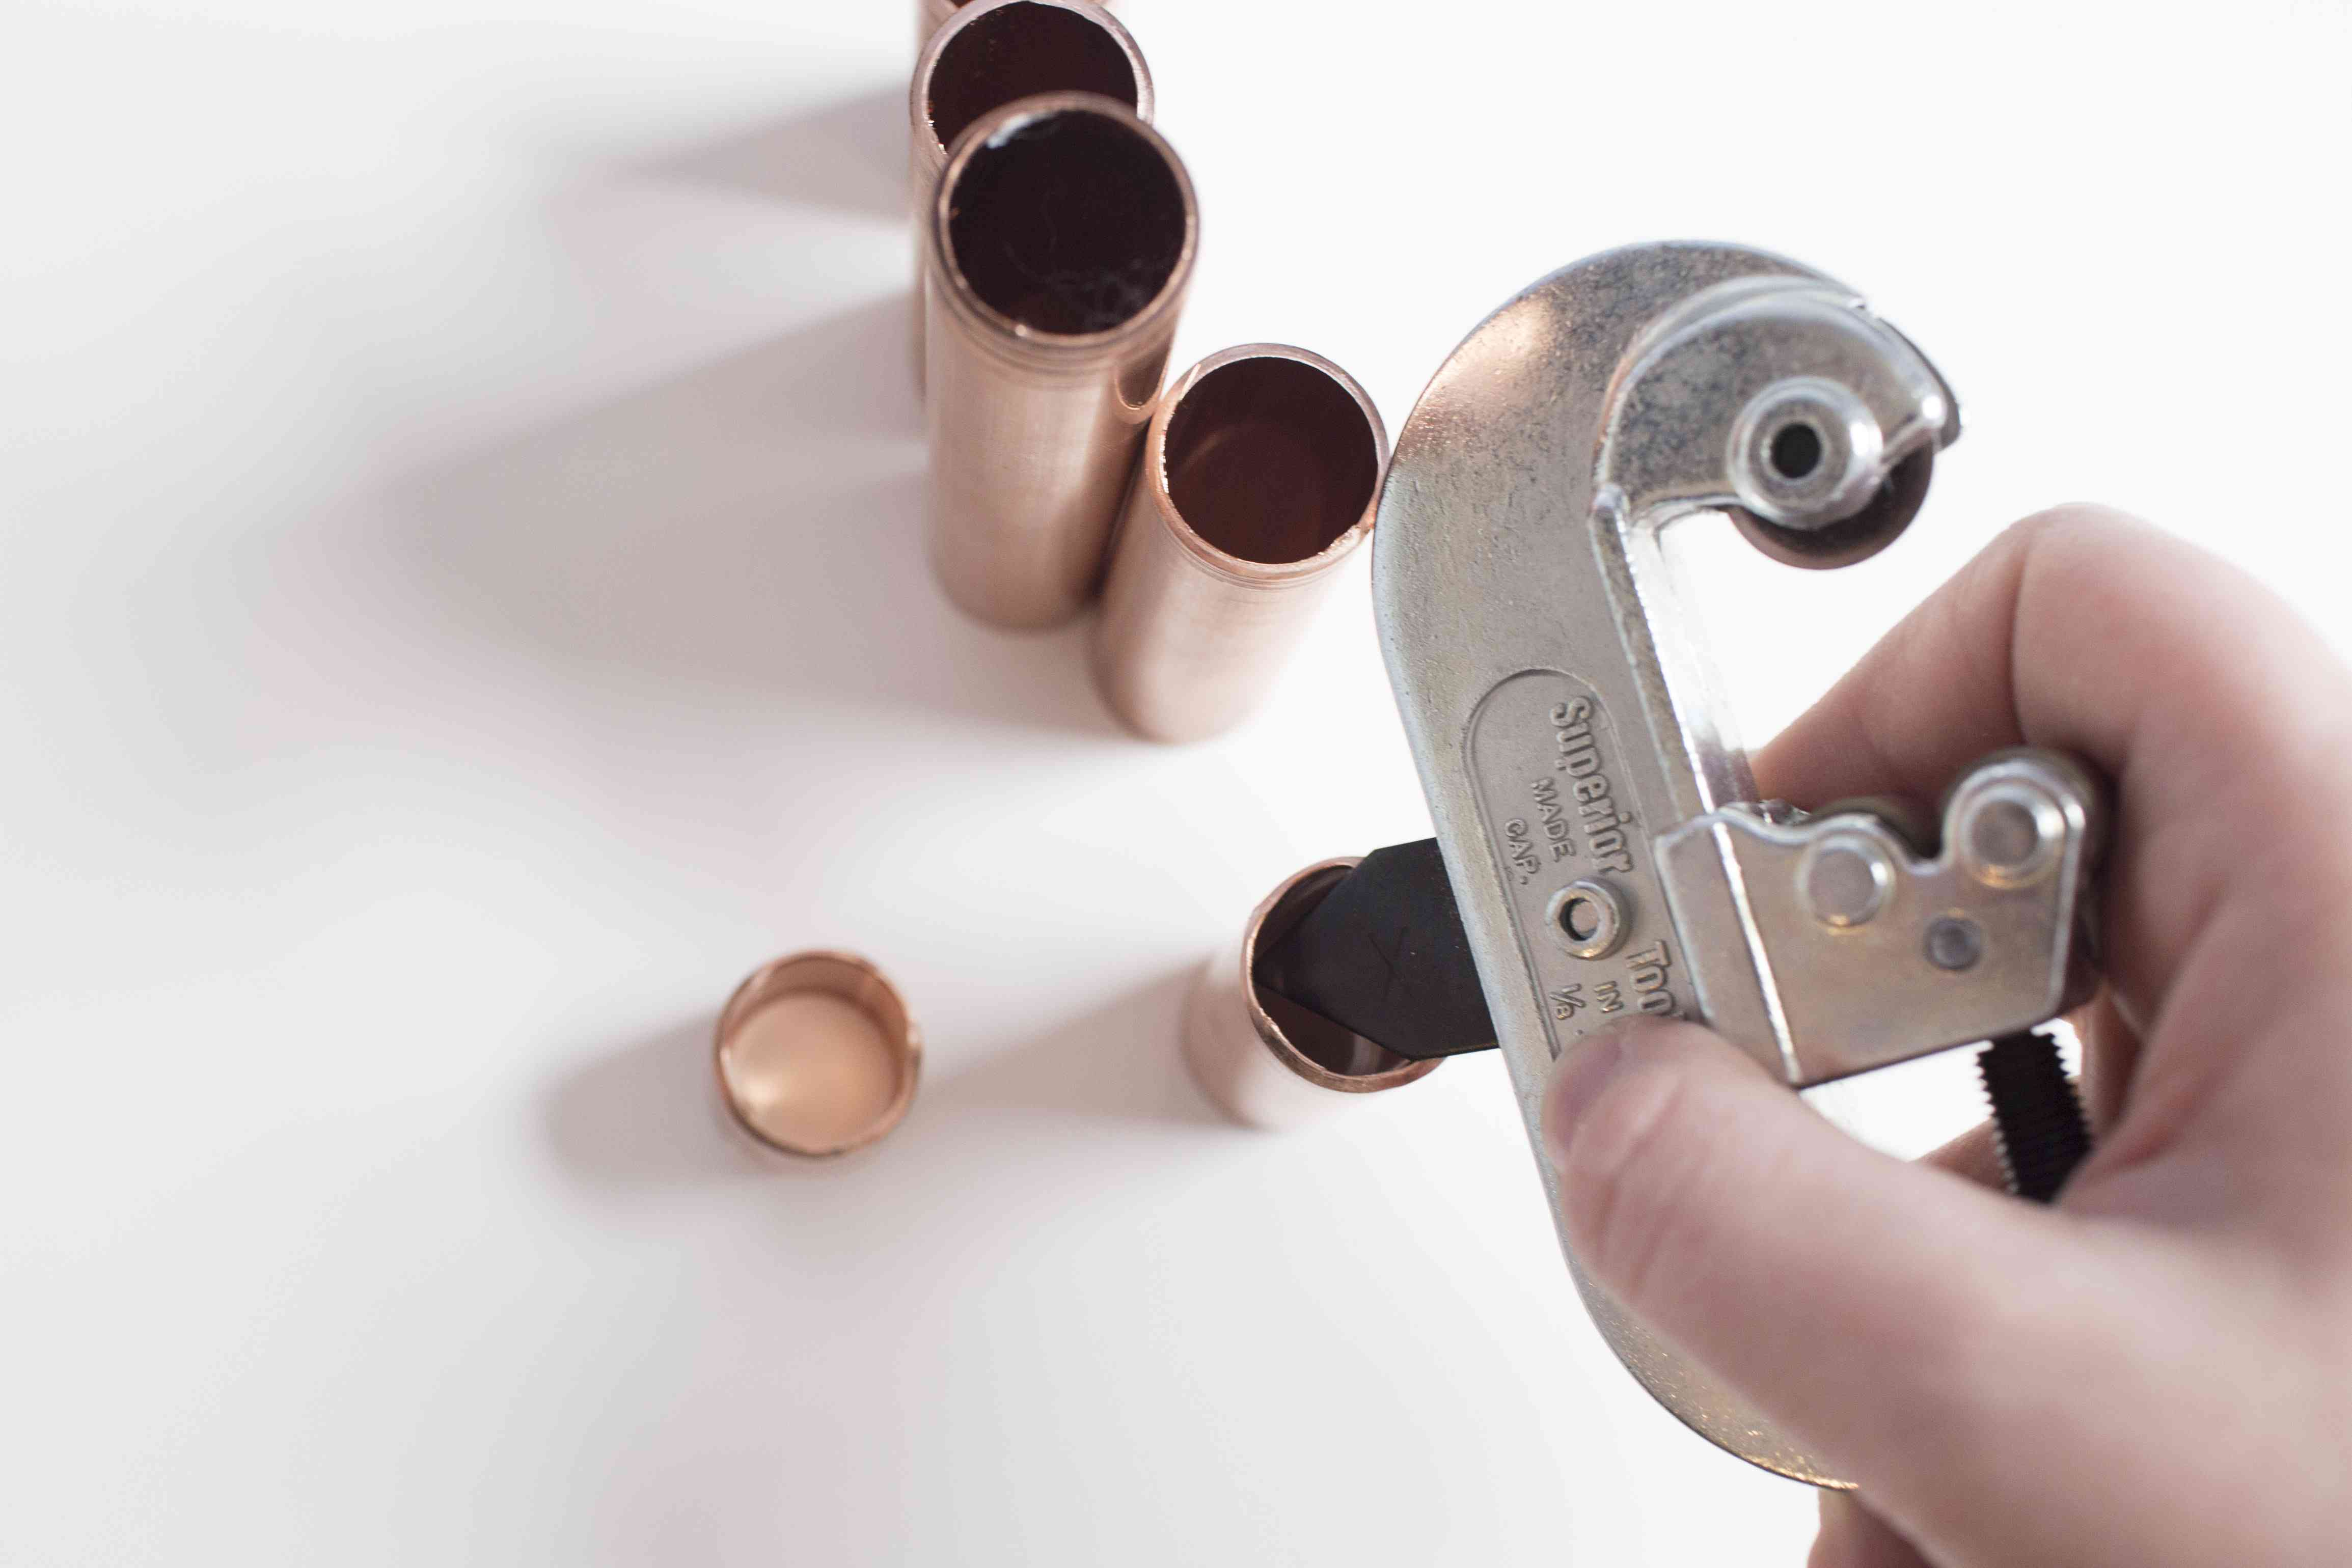 Using a pipe cutter smoothing out any uneven edges on the copper pipe pieces.